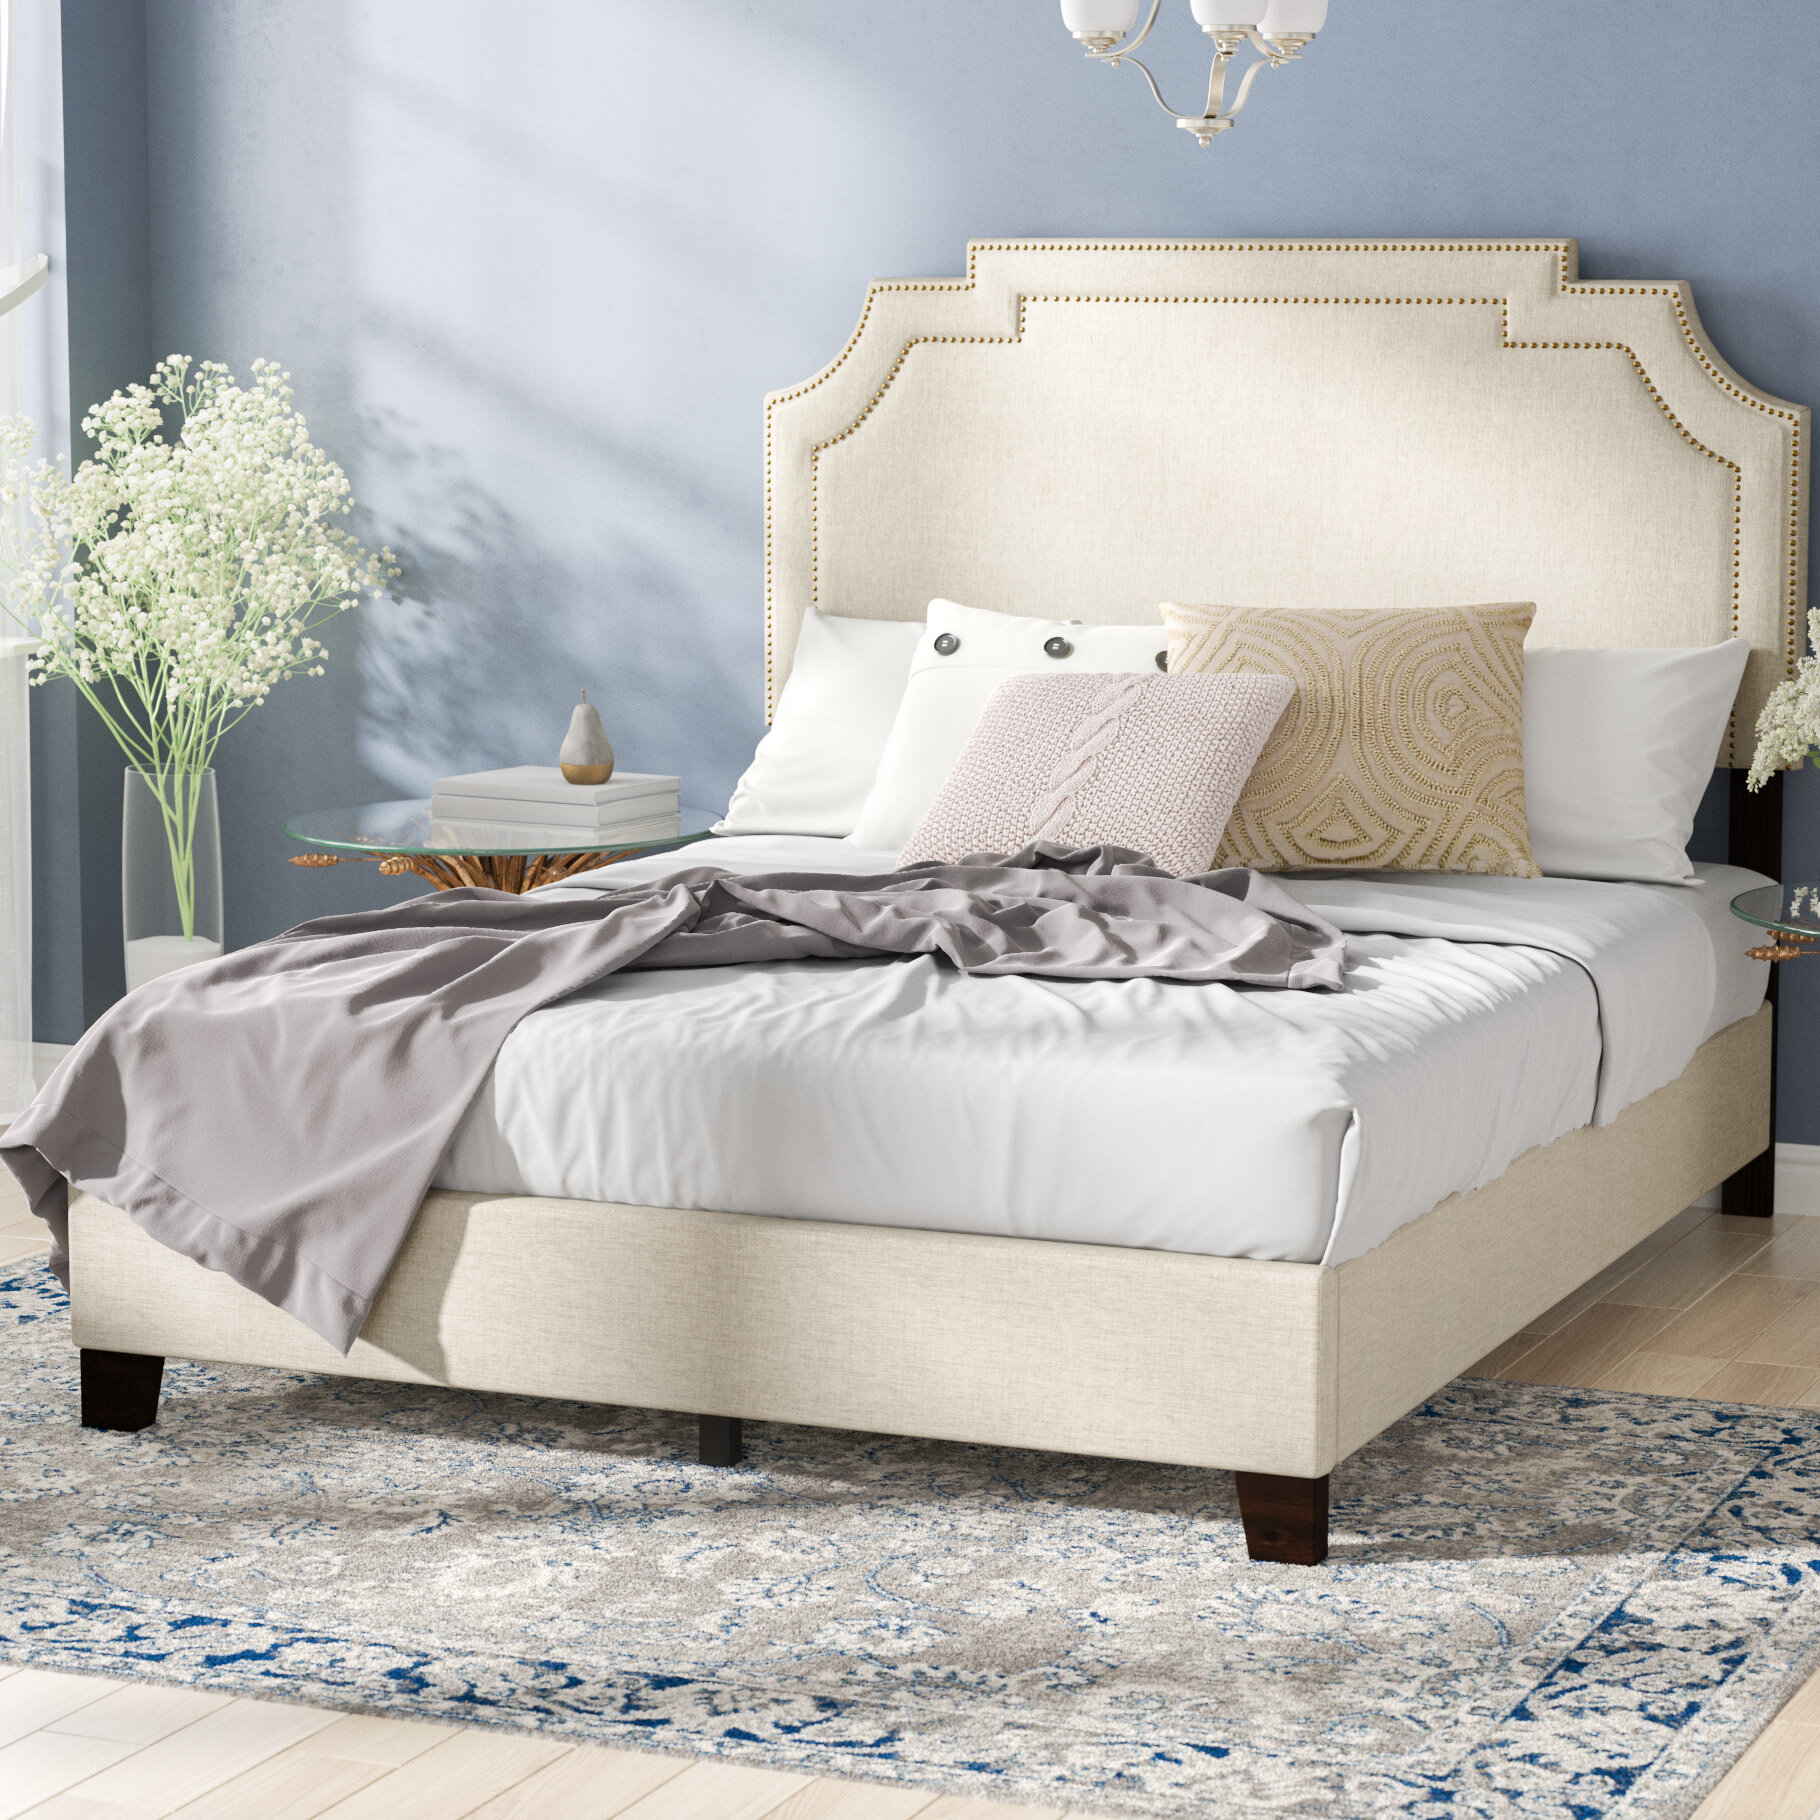 Corner Bed Furniture Unit Darby Home Co Galway Tiered Clipped Corner Queen Upholstered Panel Bed Reviews Wayfair Wayfair Darby Home Co Galway Tiered Clipped Corner Queen Upholstered Panel